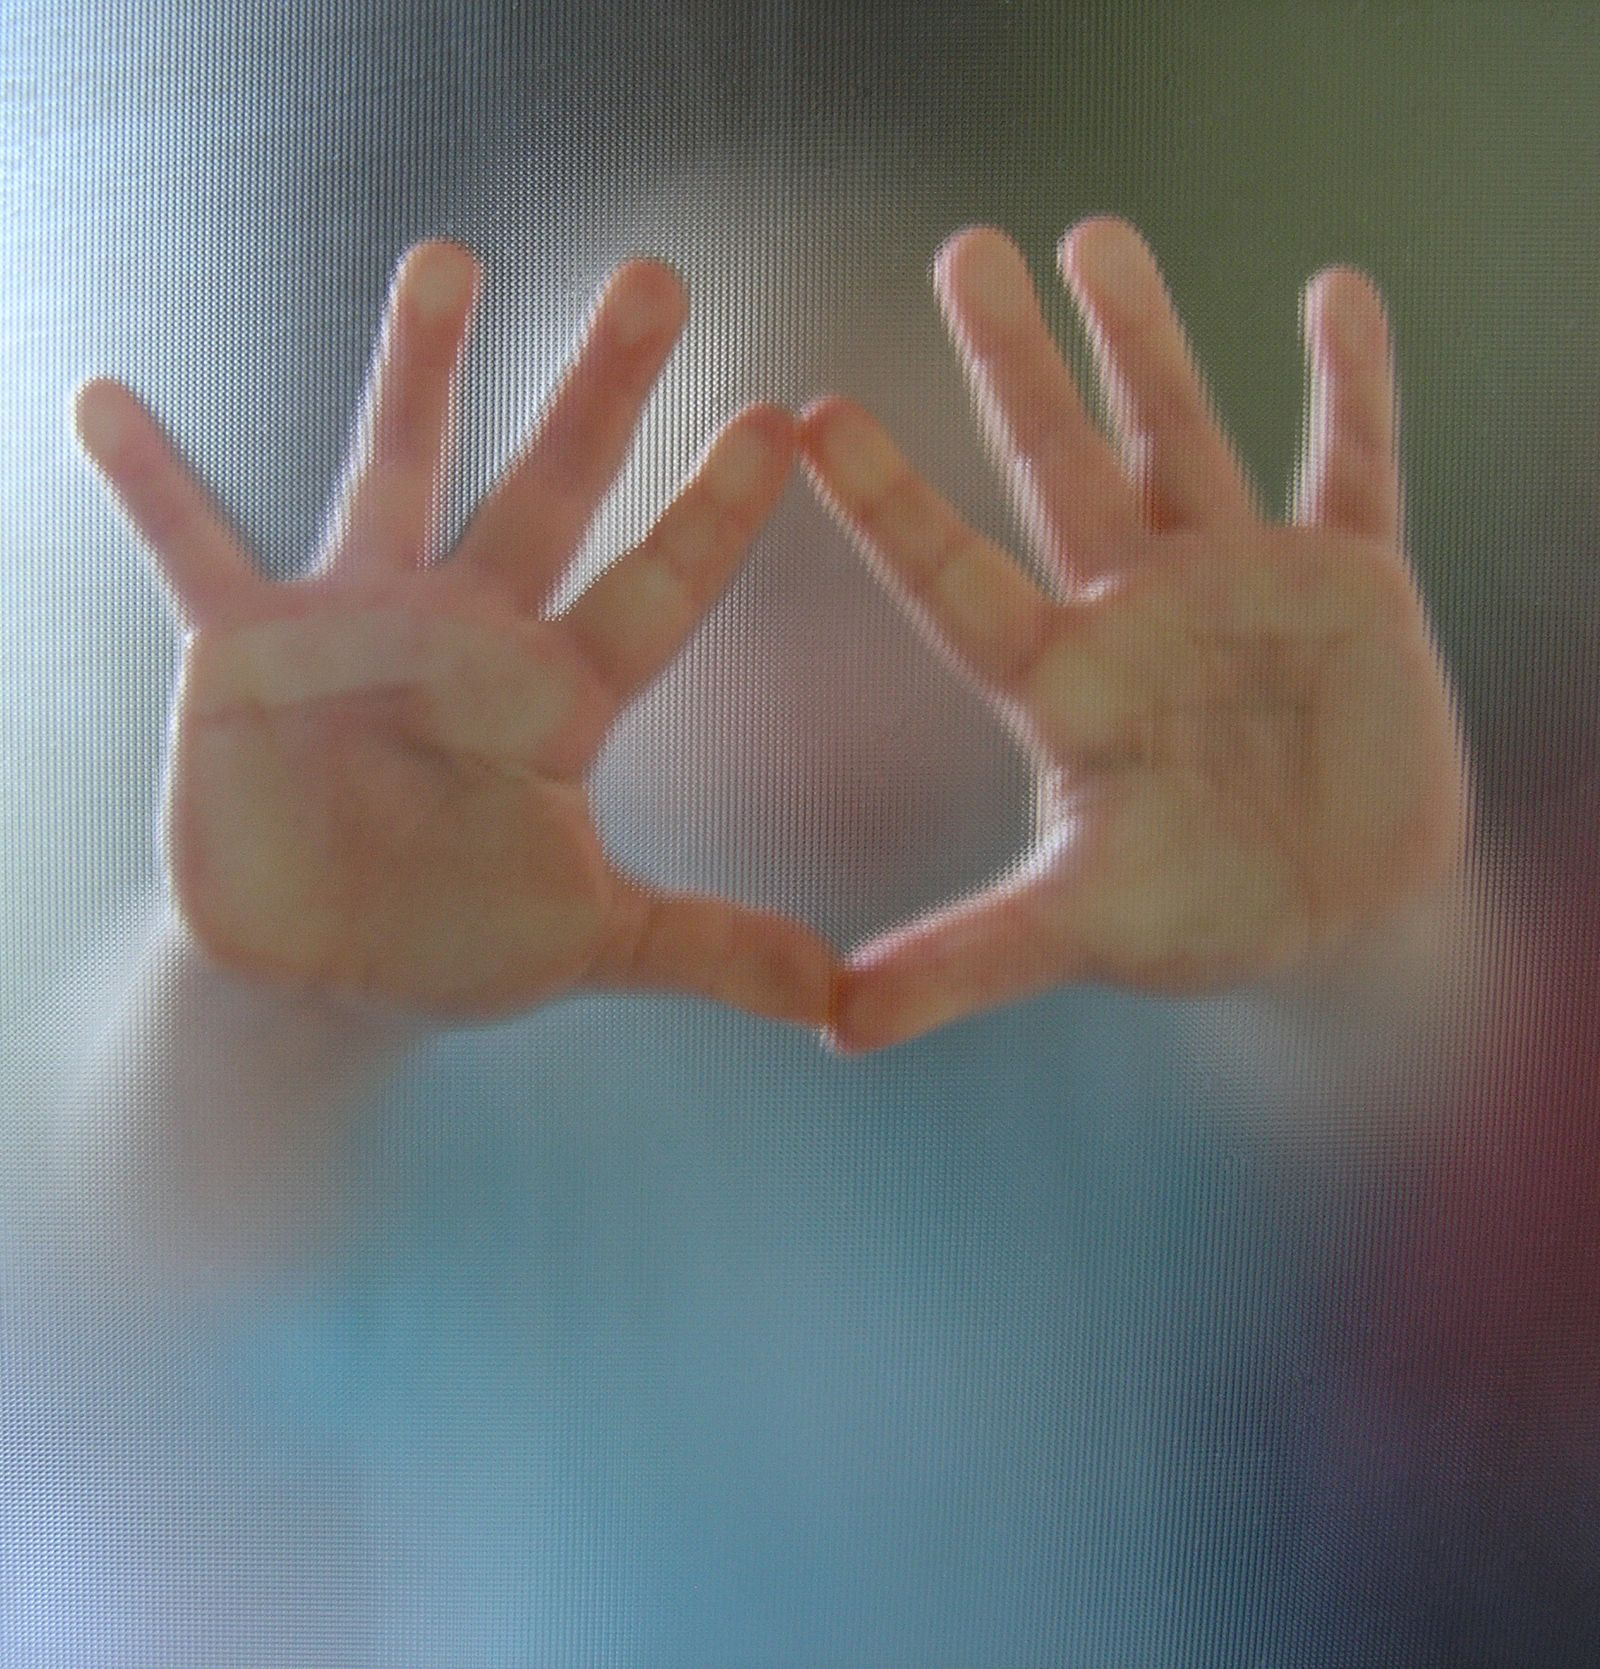 Hands reaching out from a blurred image of a child